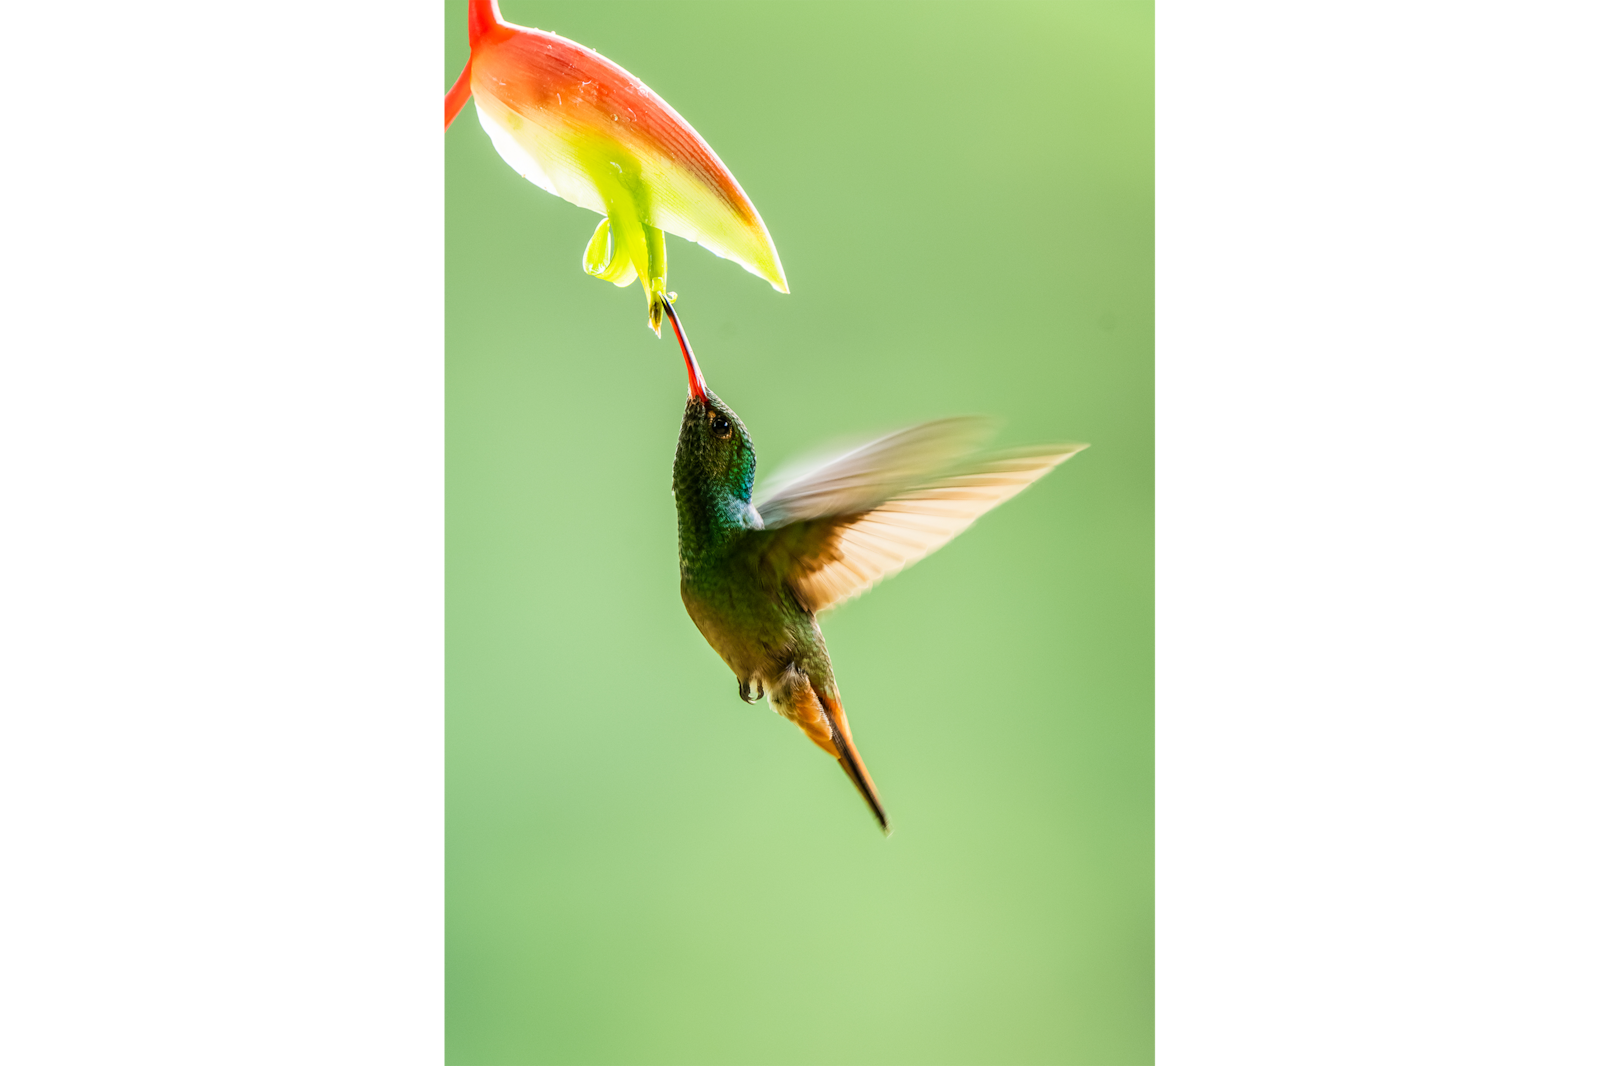 Rufous Tailed Hummingbird costa rica